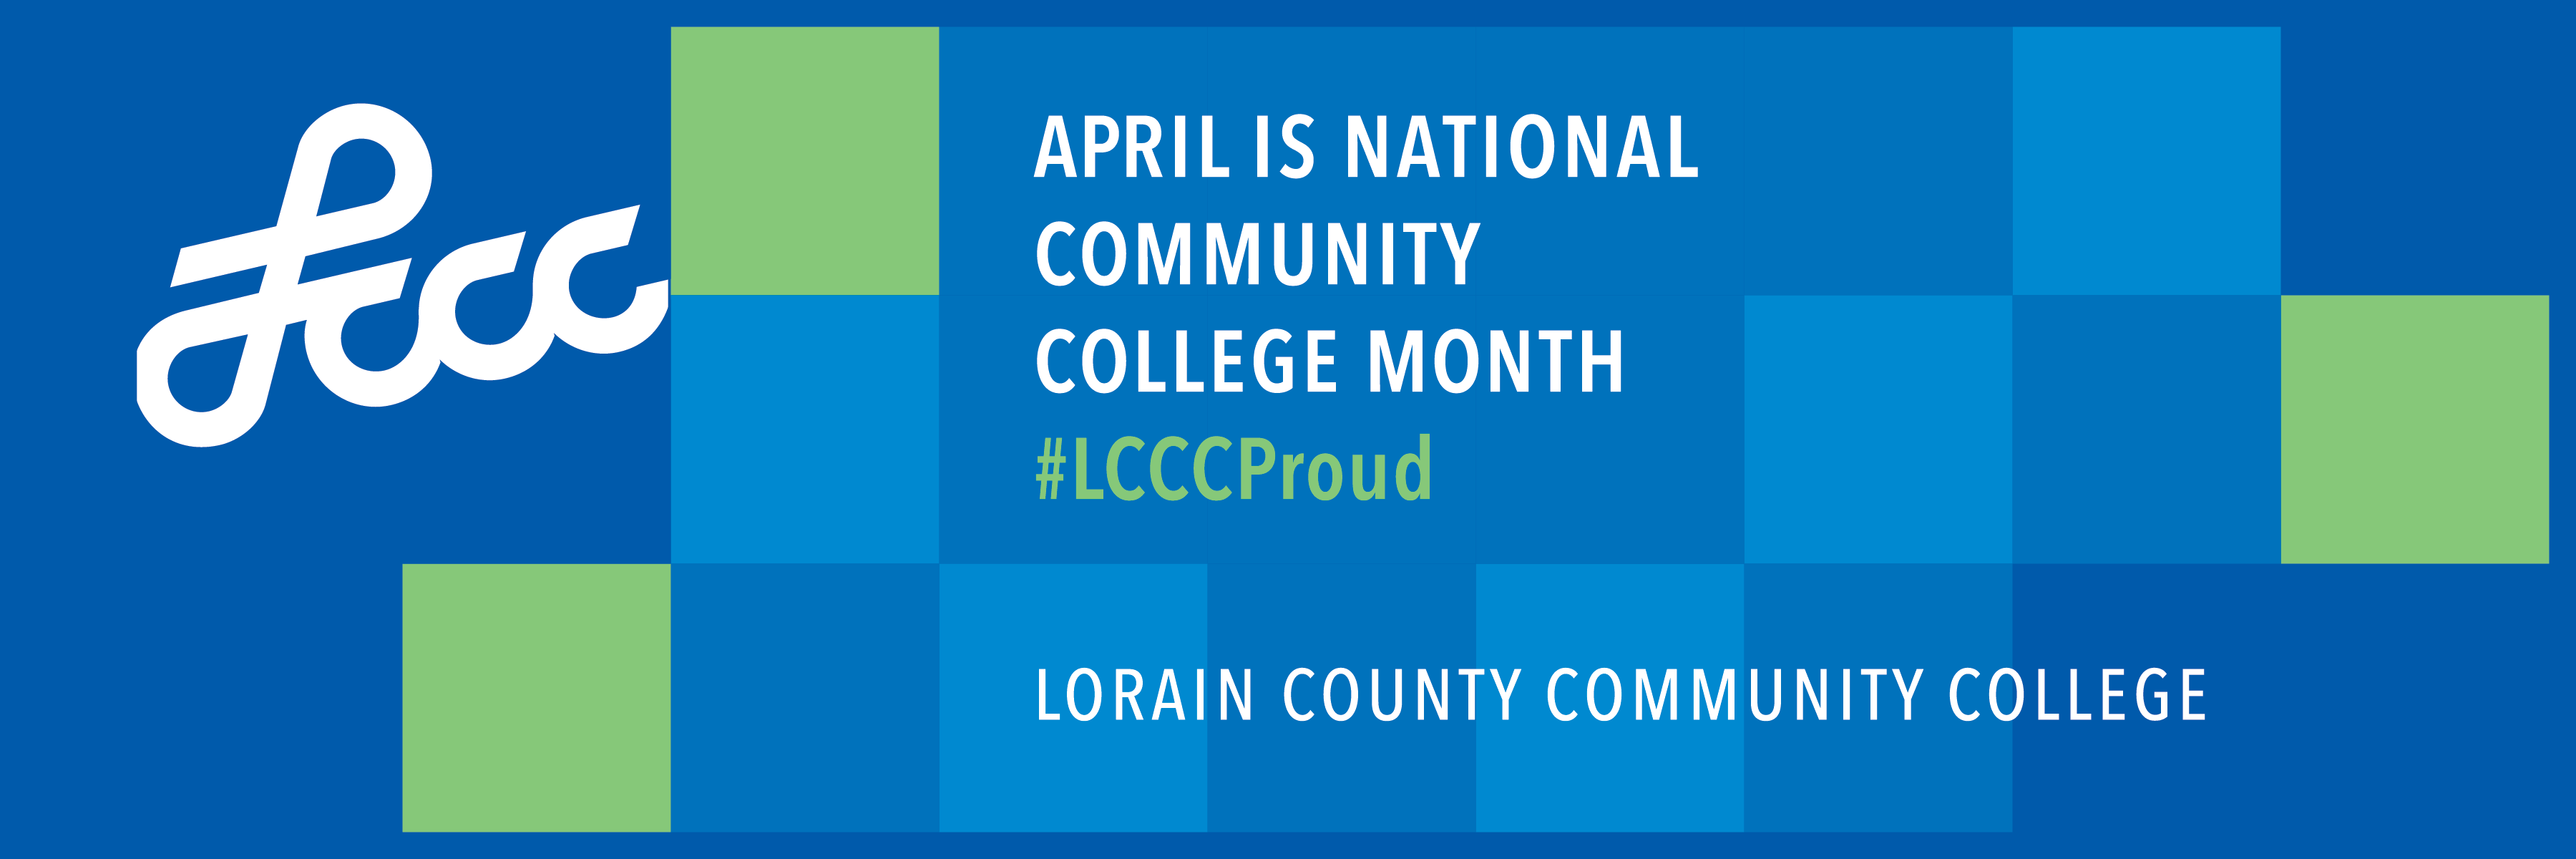 April is National Community College Month